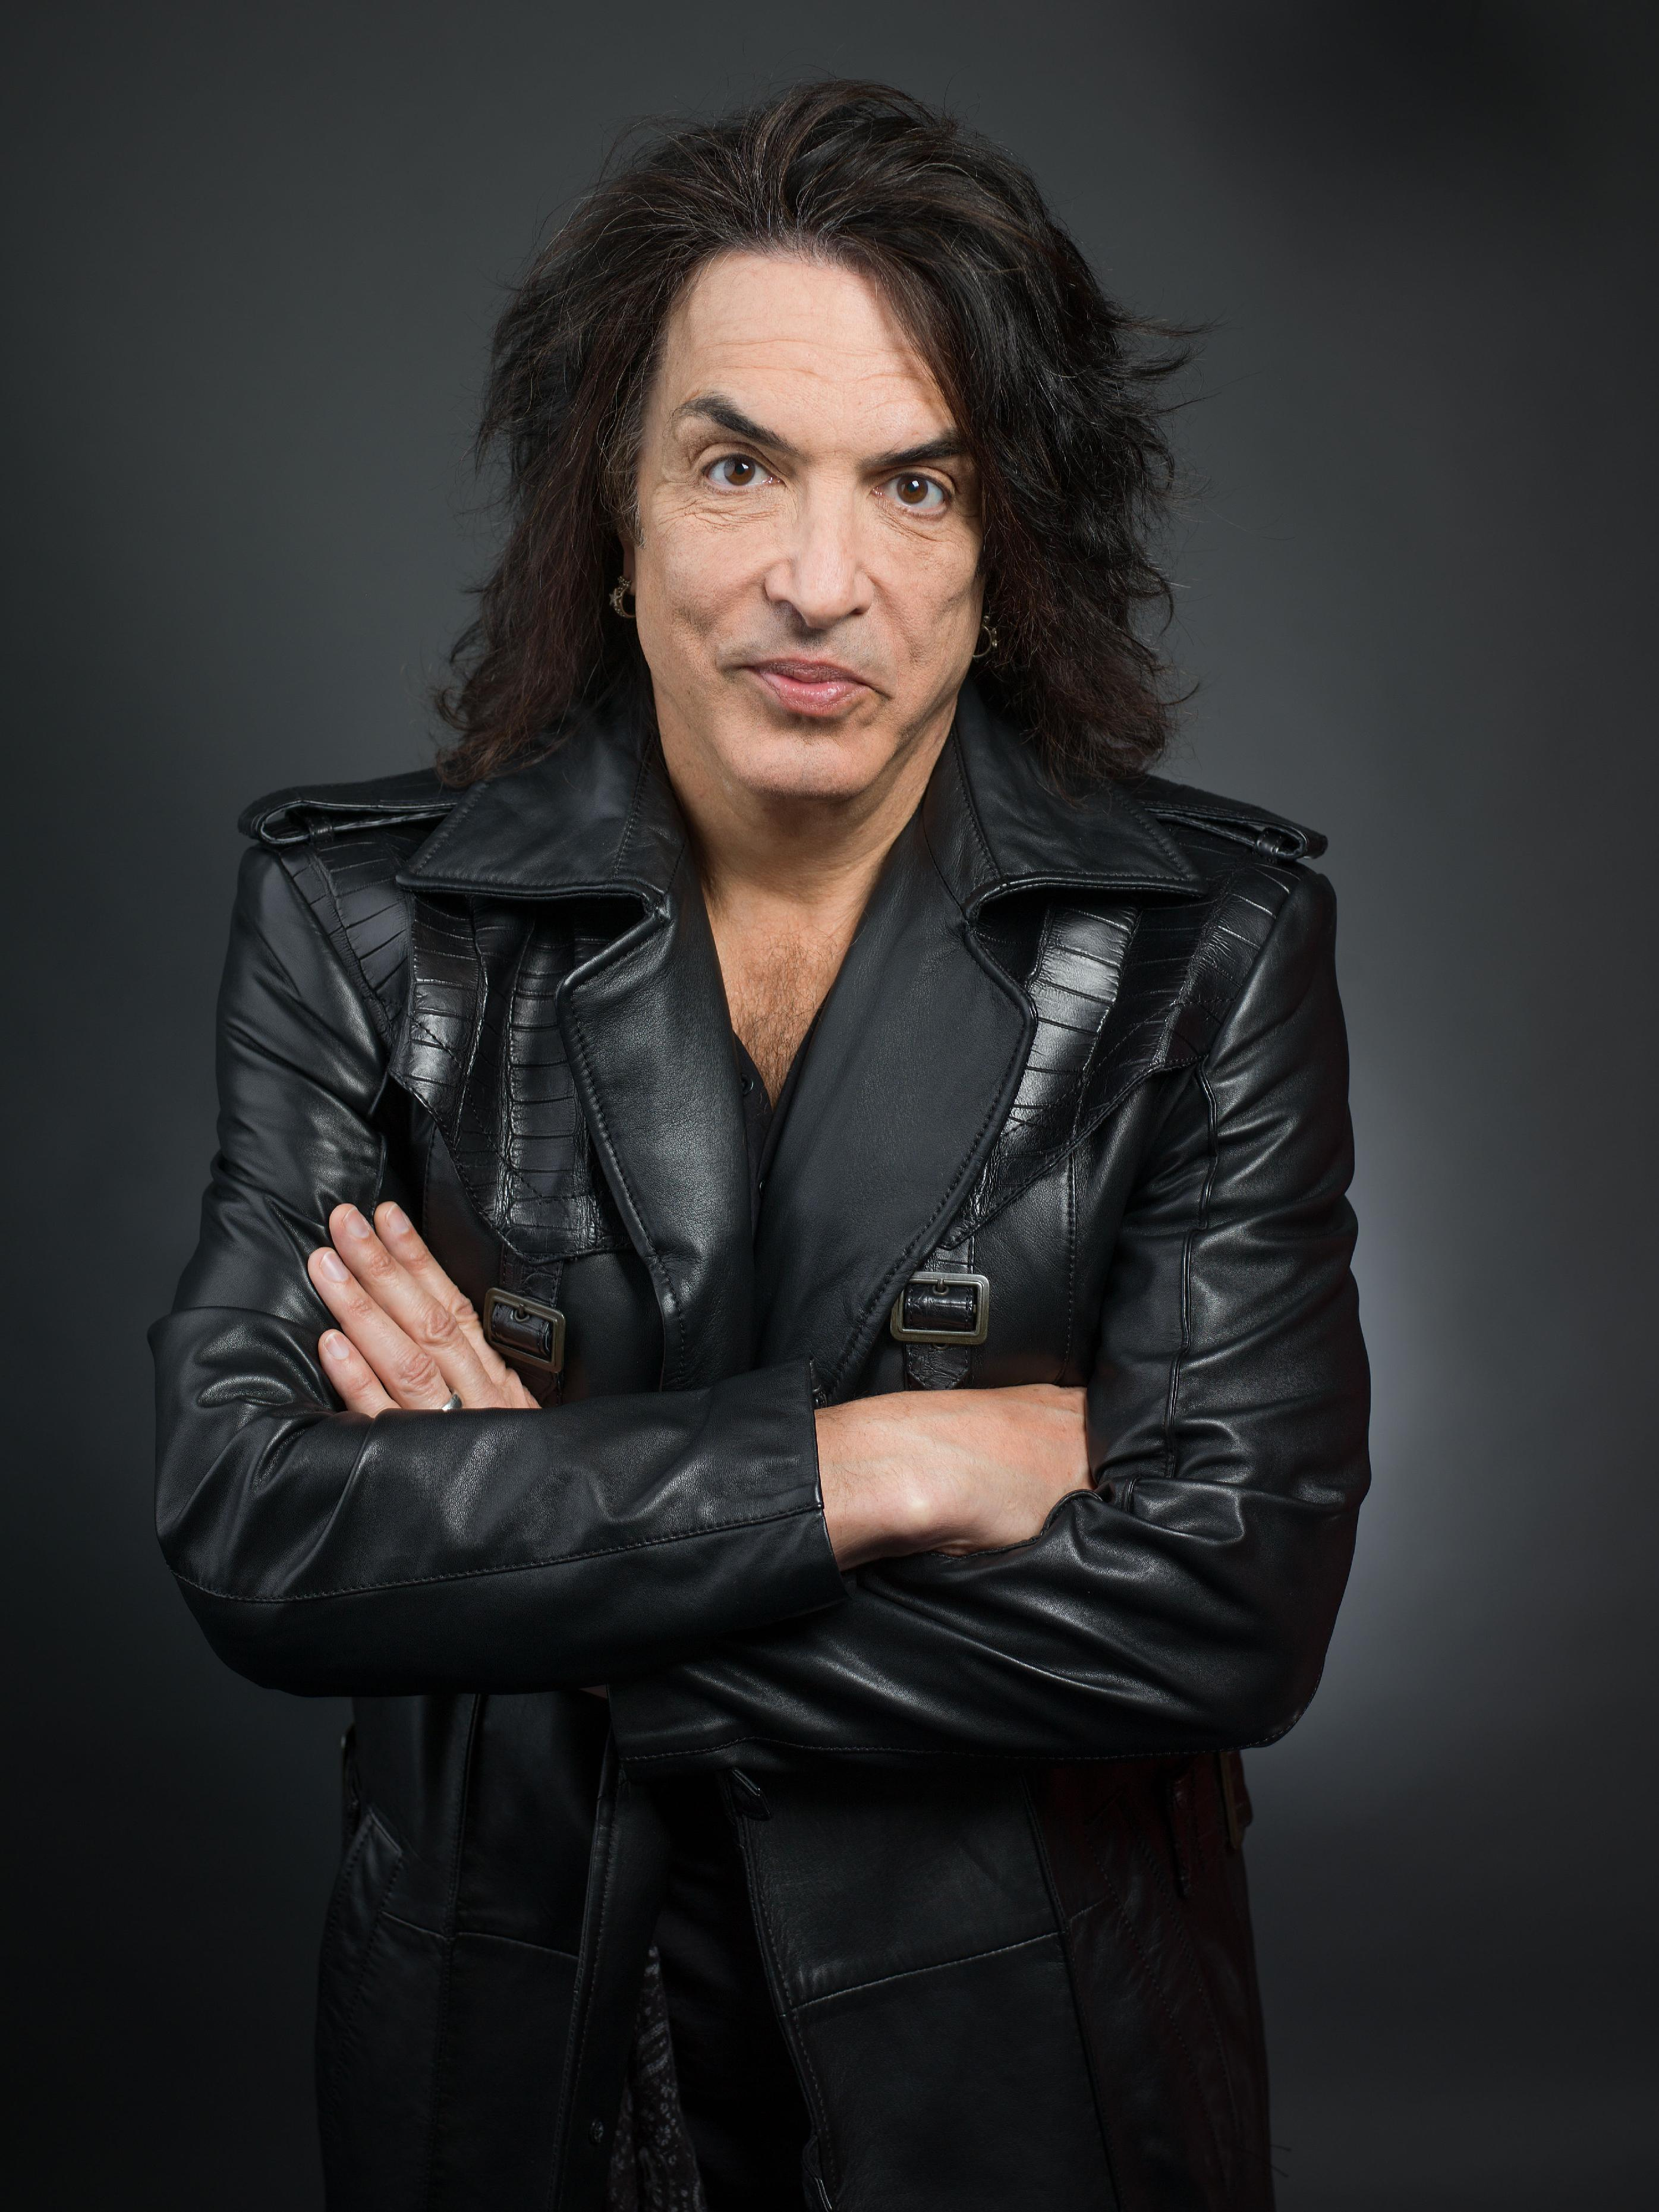 KISS's Paul Stanley Opens Up About Overcoming Partial Deafness, Prepares for 40-Year Celebration